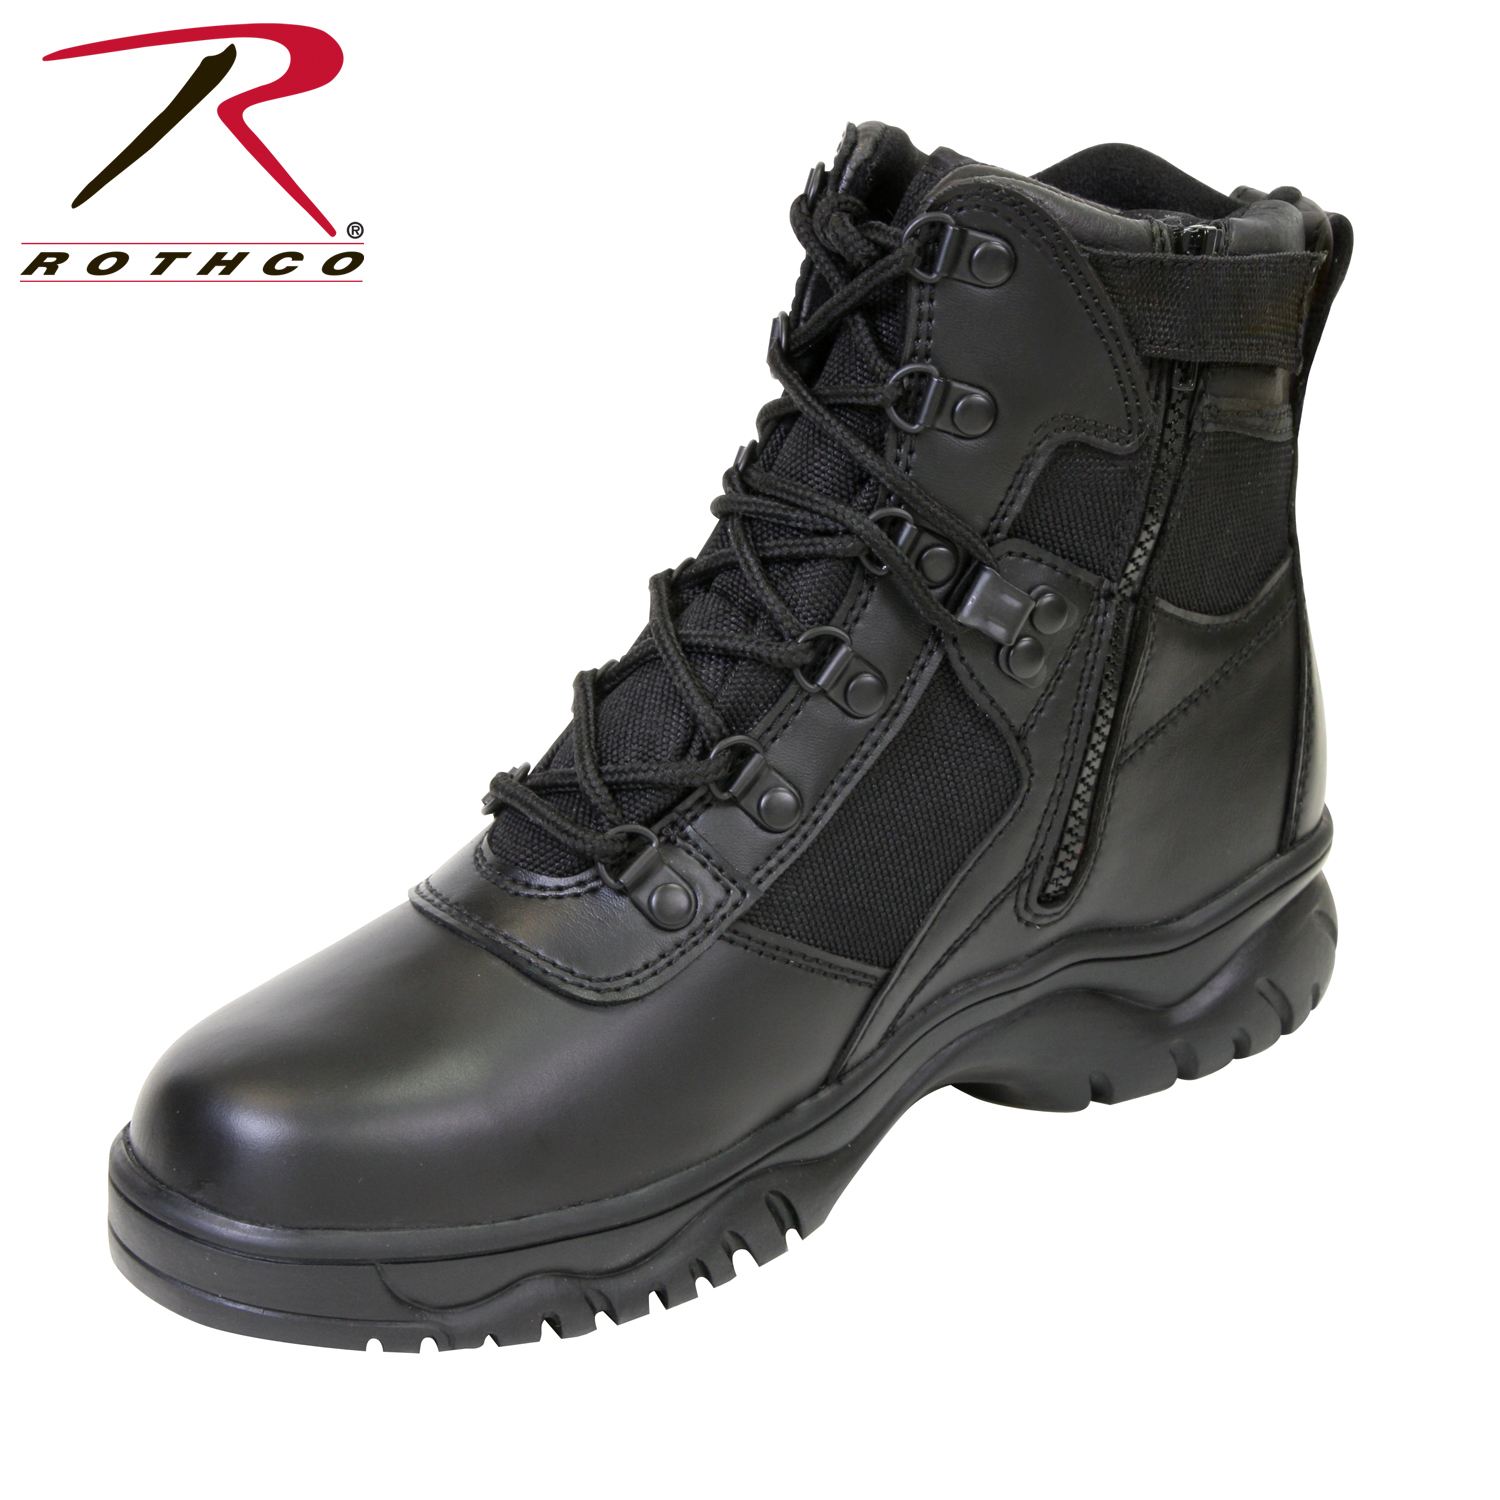 423ec50c801 Rothco 6 Inch Blood Pathogen Tactical Boot